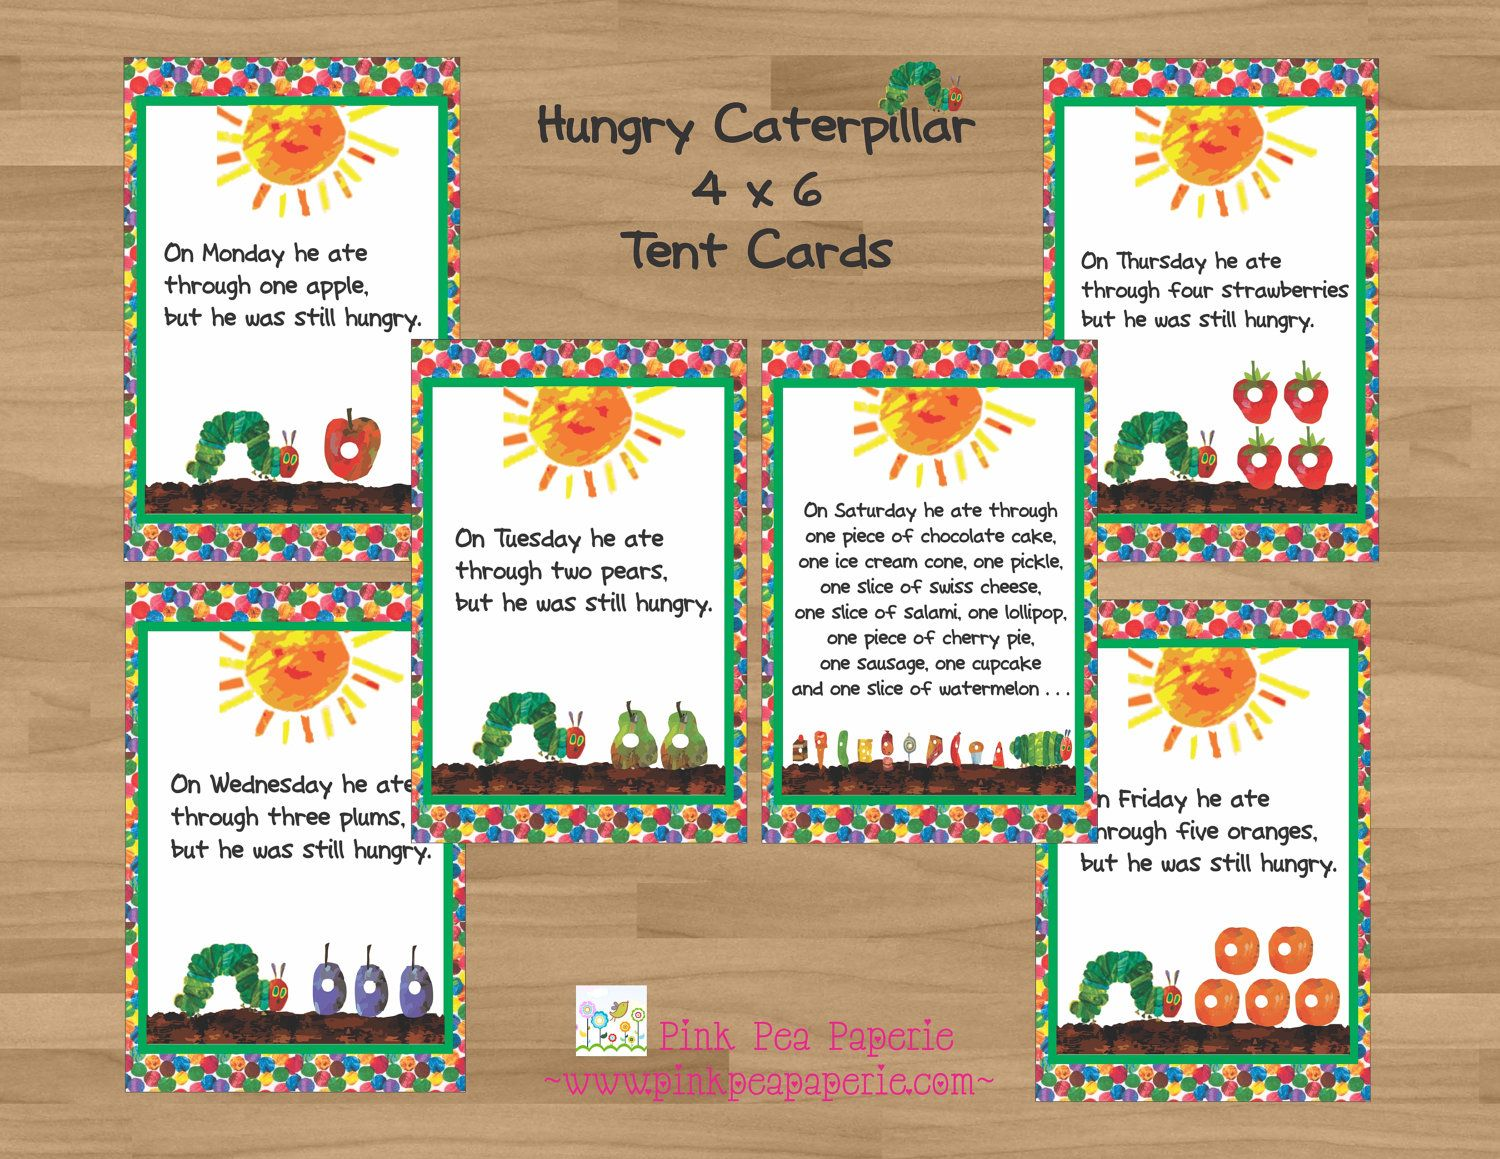 Printable VERY Hungry Caterpillar 4 x 6 Tent CardsFood Labels 6 – Hungry Caterpillar Birthday Card